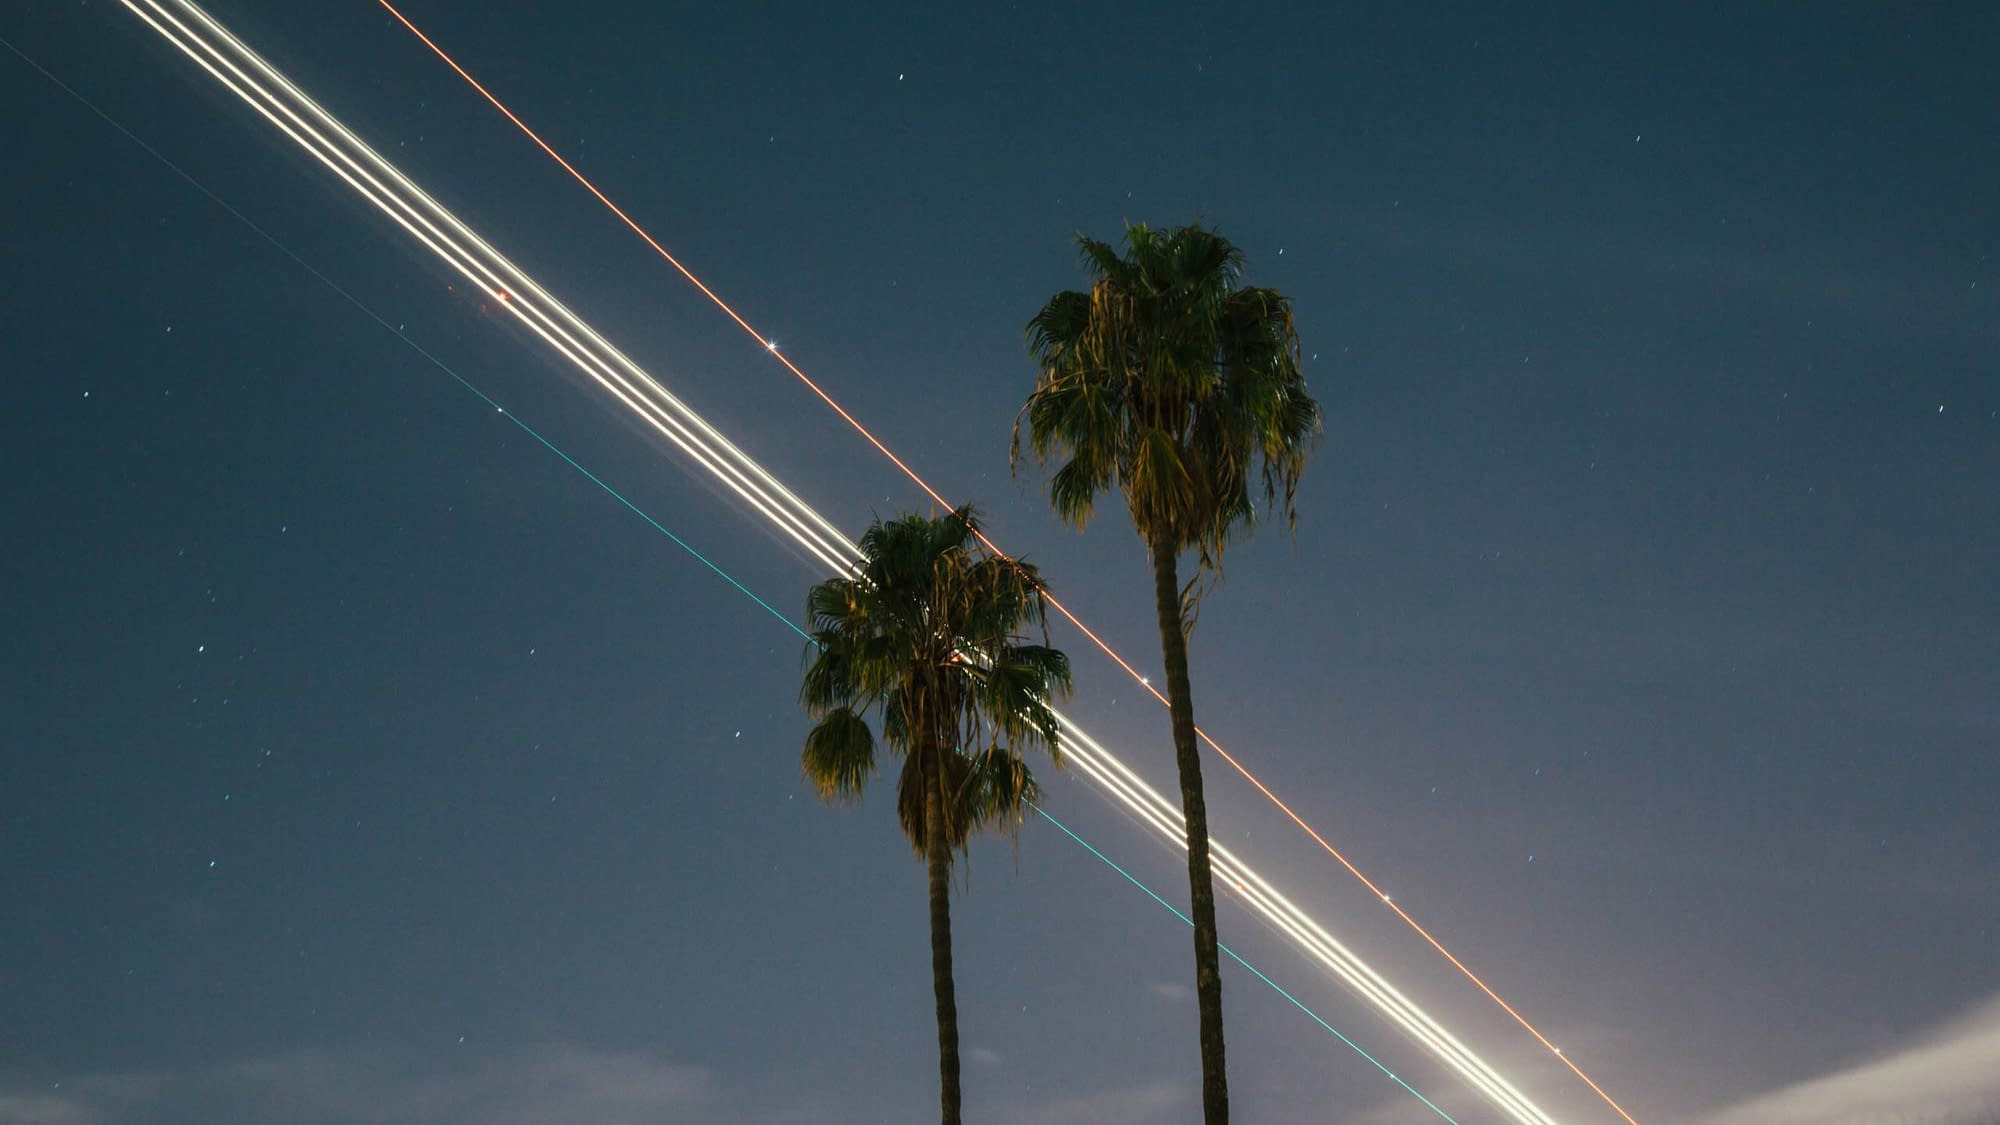 LAX during night with plane light long exposure + palm trees